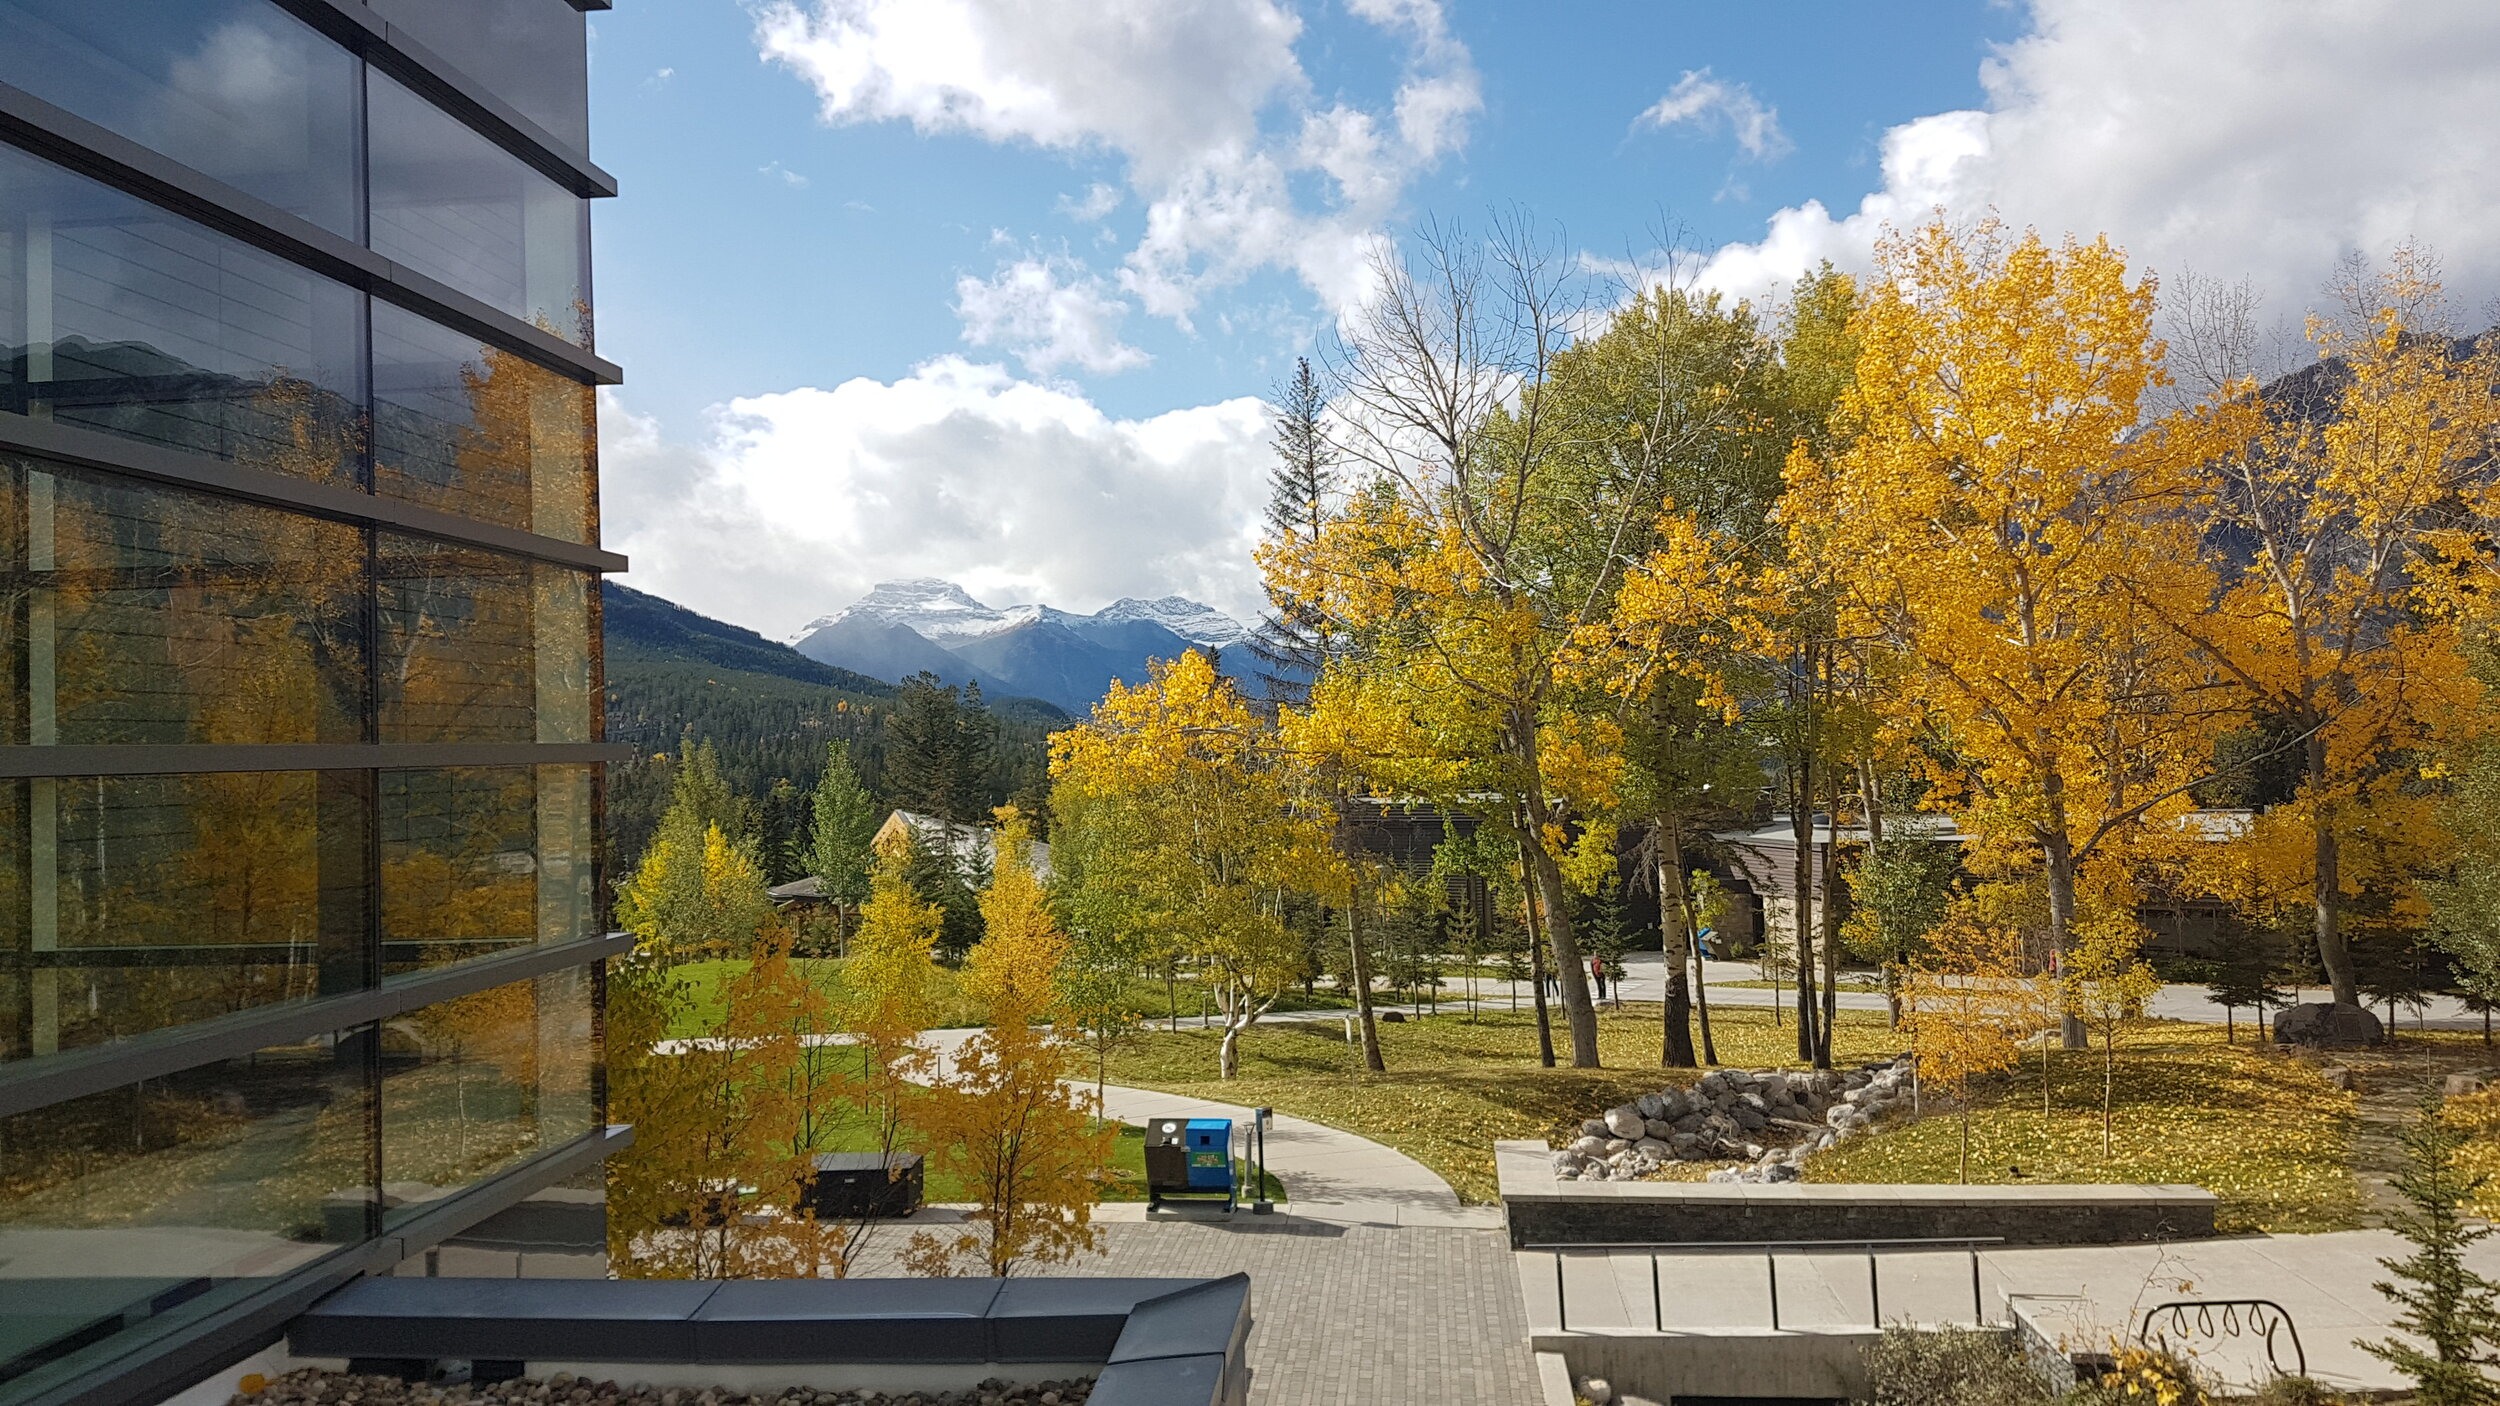 The Banff centre for the arts. Conference location for IPOS/CAPO